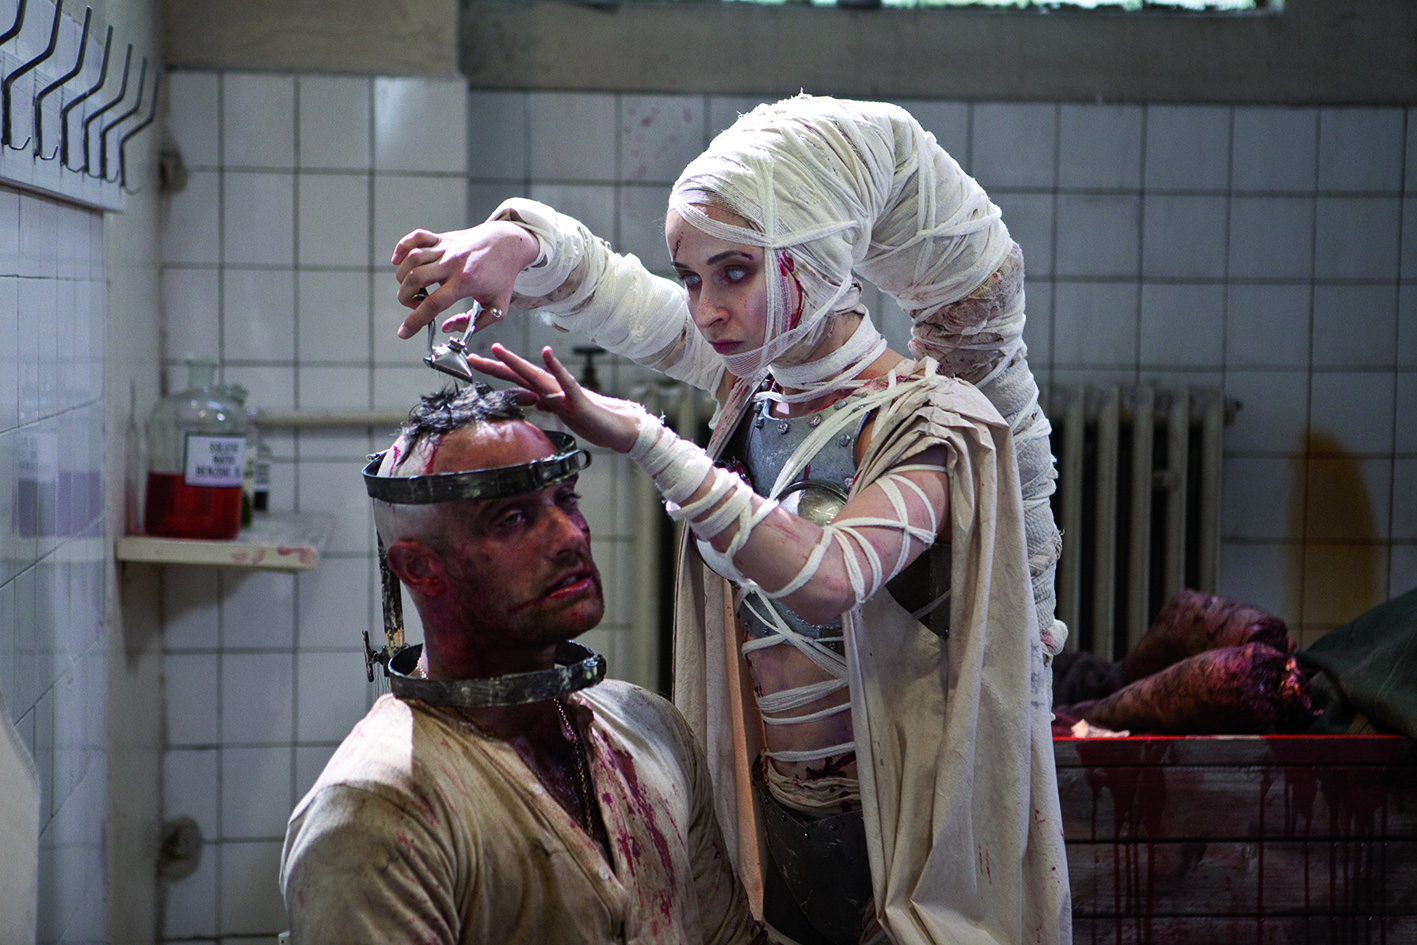 frankenstein real mistake Many people know that mary shelley, the author of frankenstein, was part of a family of famed romantic era writers her mother, mary wollstonecraft, was one of the first leaders of the feminist movement, her father, william godwin, was a famous social philosopher, and her husband, percy shelley, was one of the leading romantic poets of the time (frankenstein: mary shelley biography.